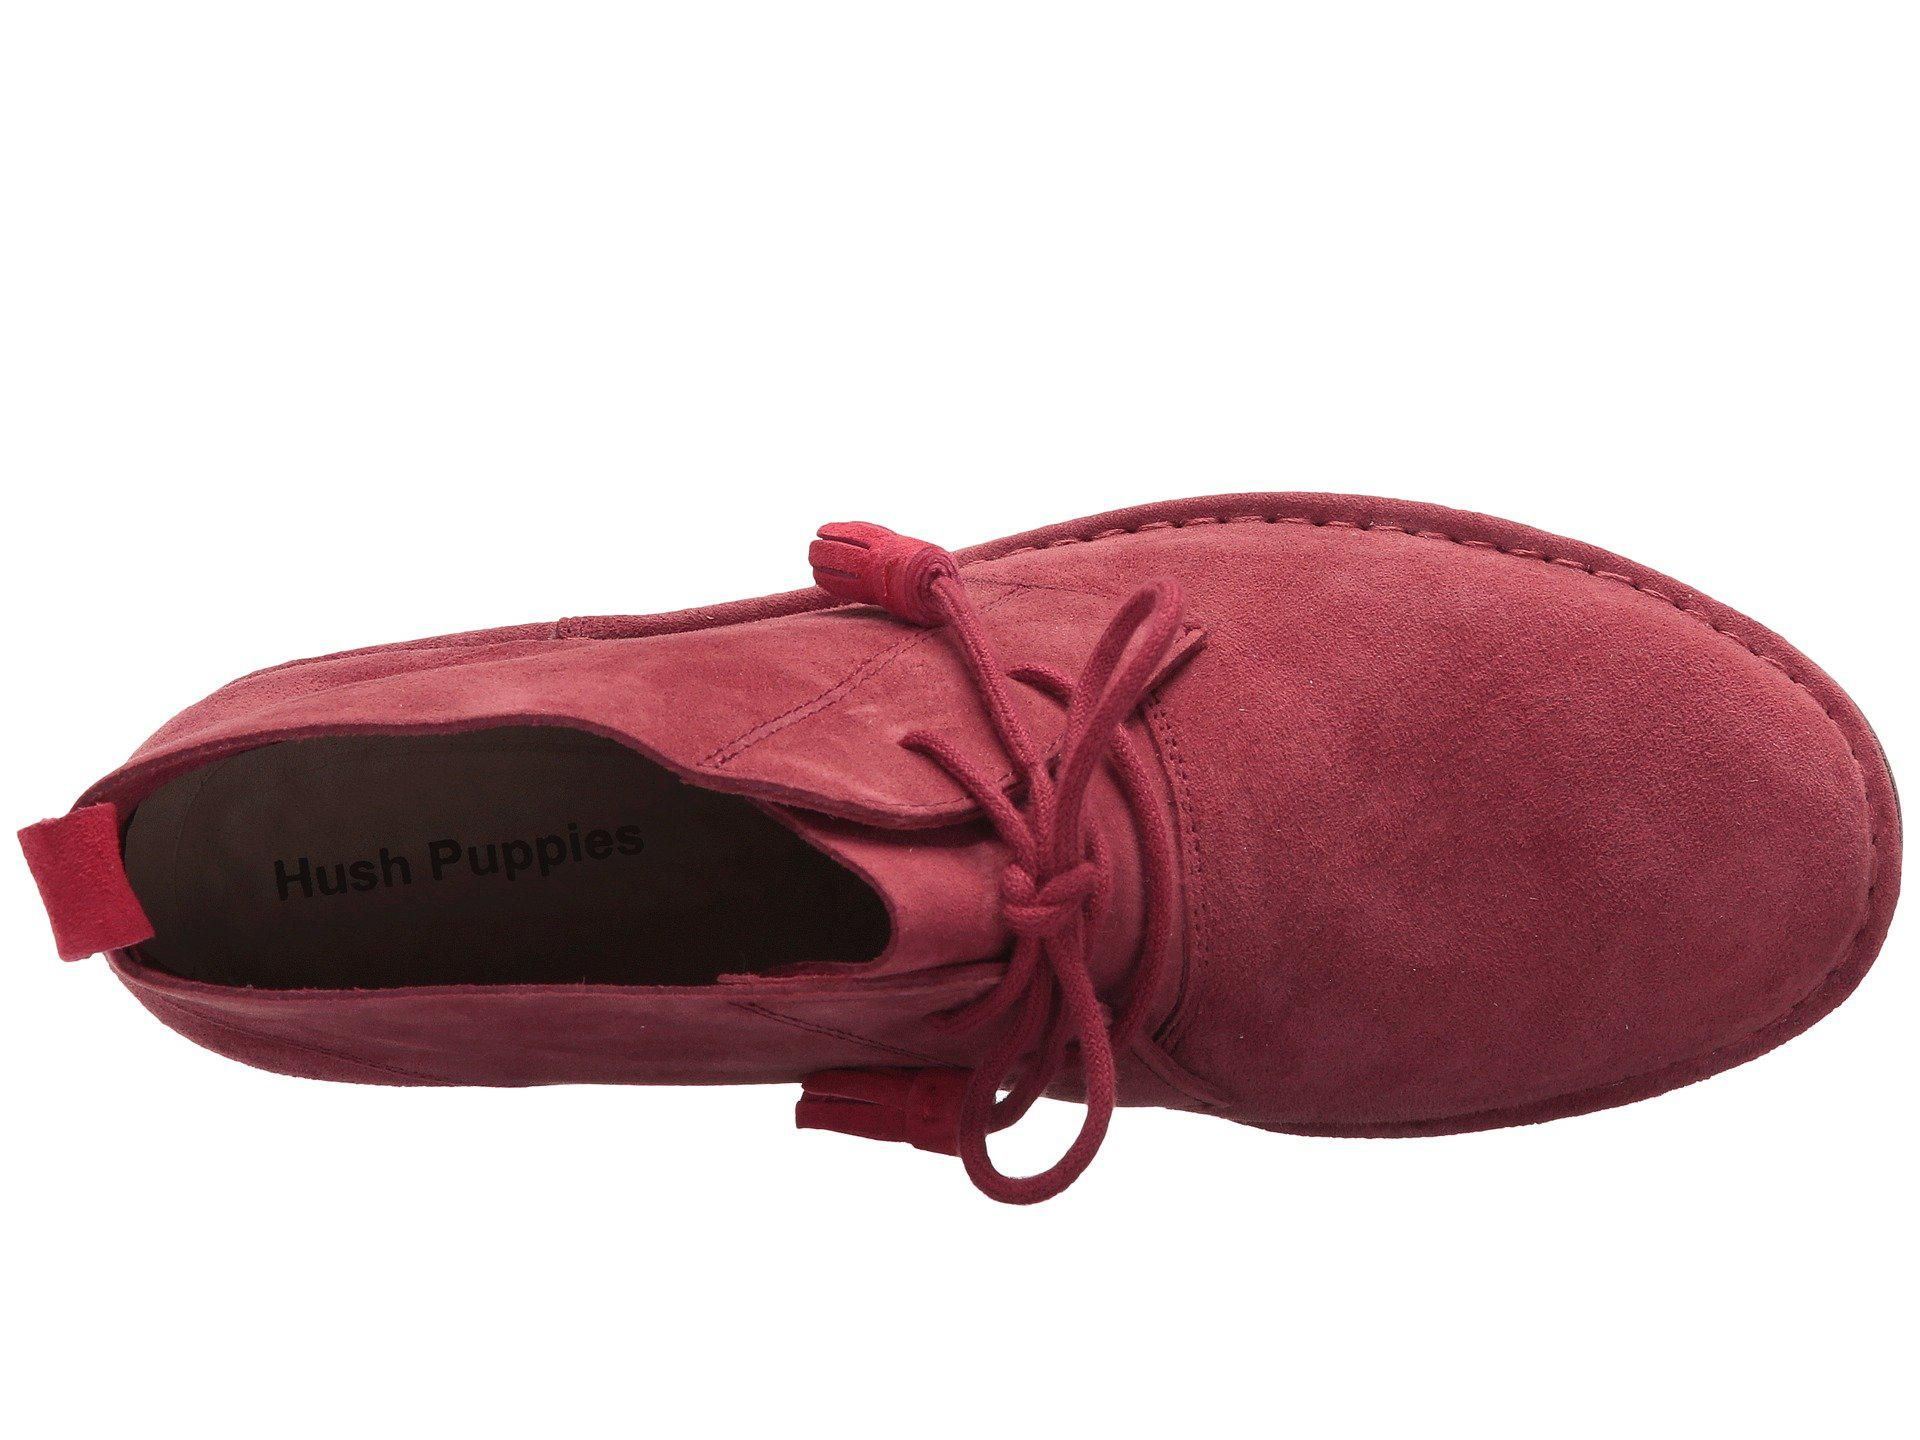 8ccc4ac9532 Lyst - Hush Puppies Cyra Catelyn in Red - Save 61%